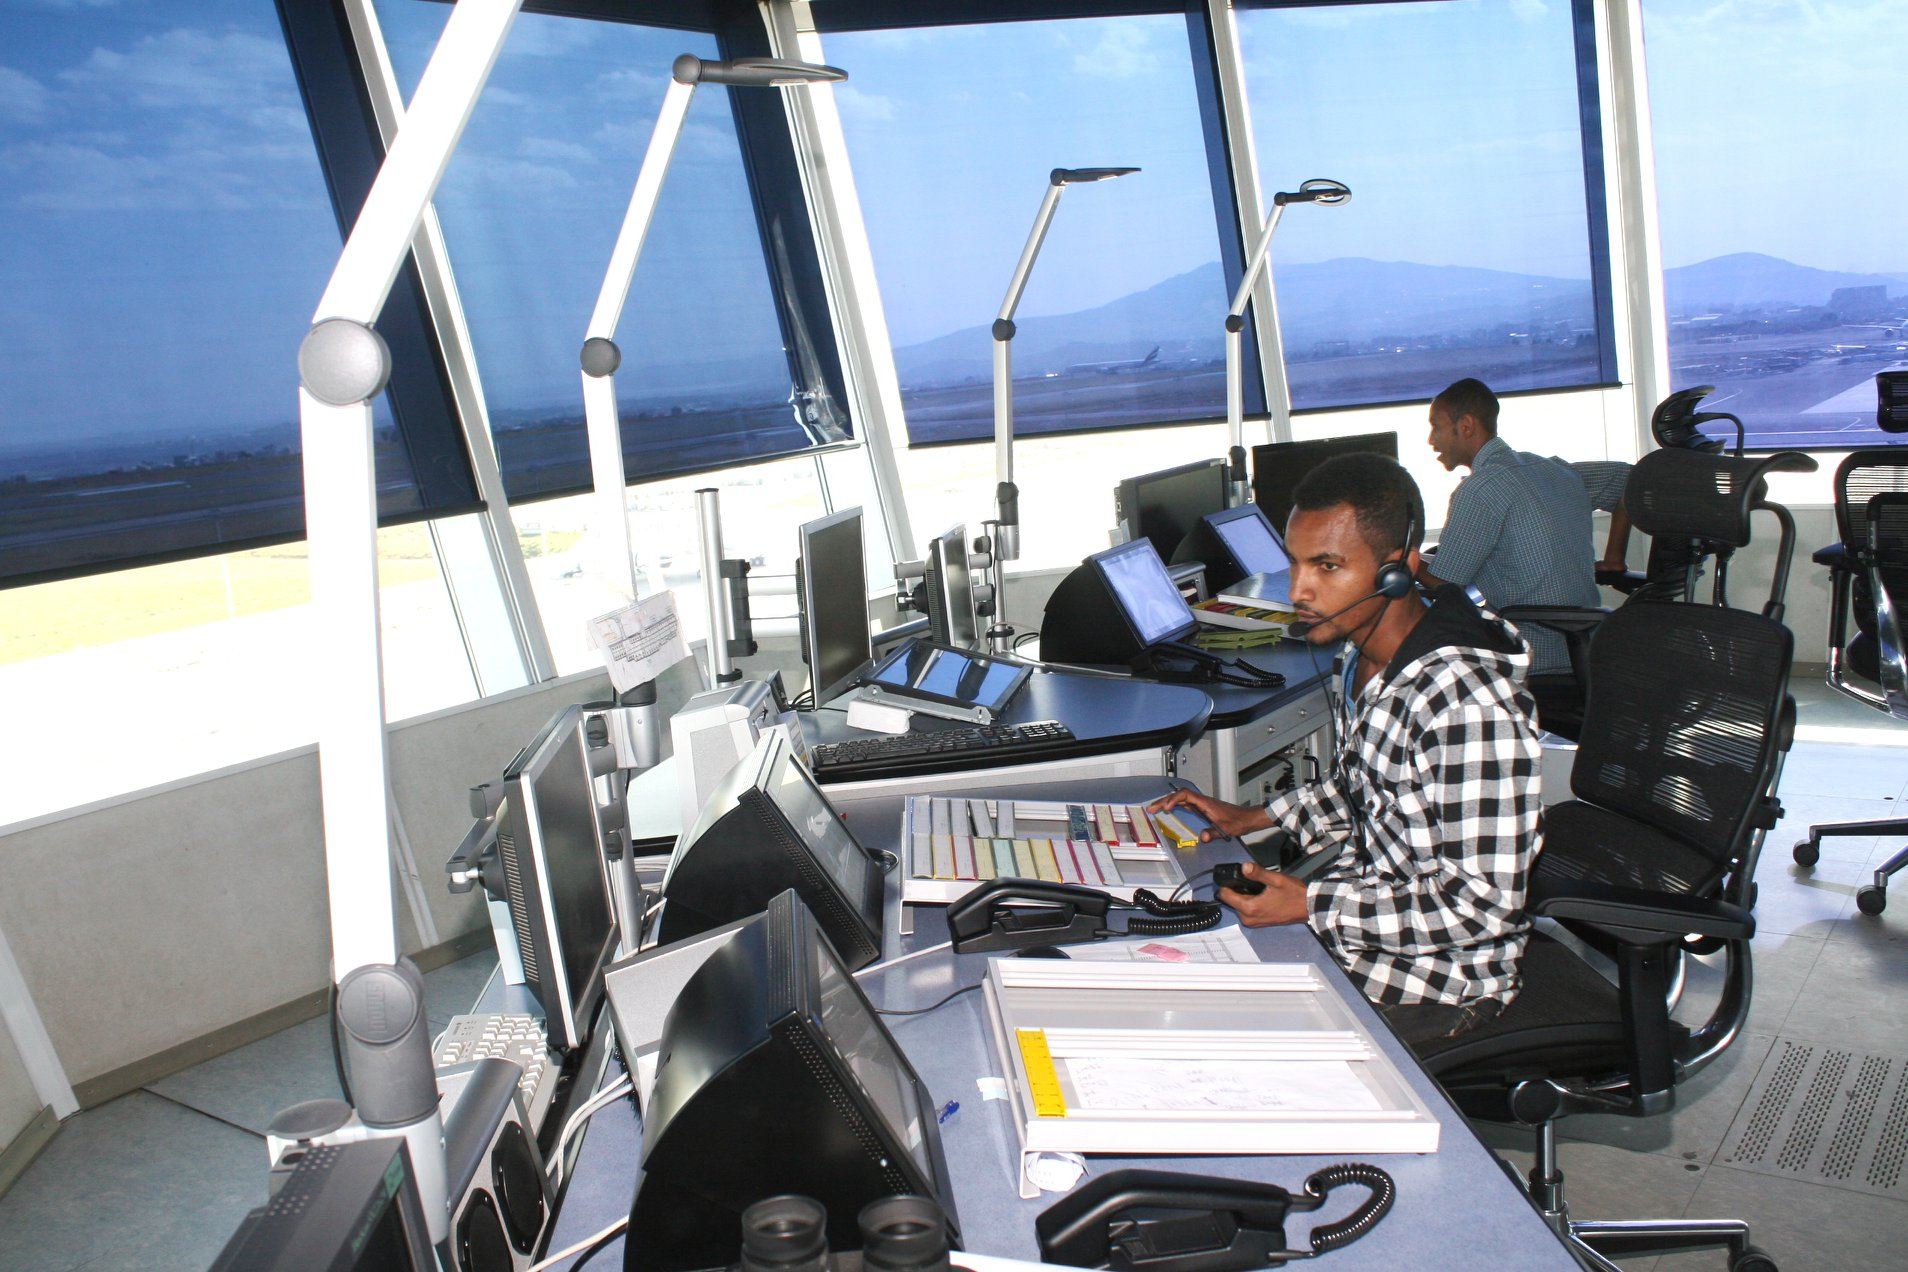 Ethiopia risking flight safety to cover up ATC strike